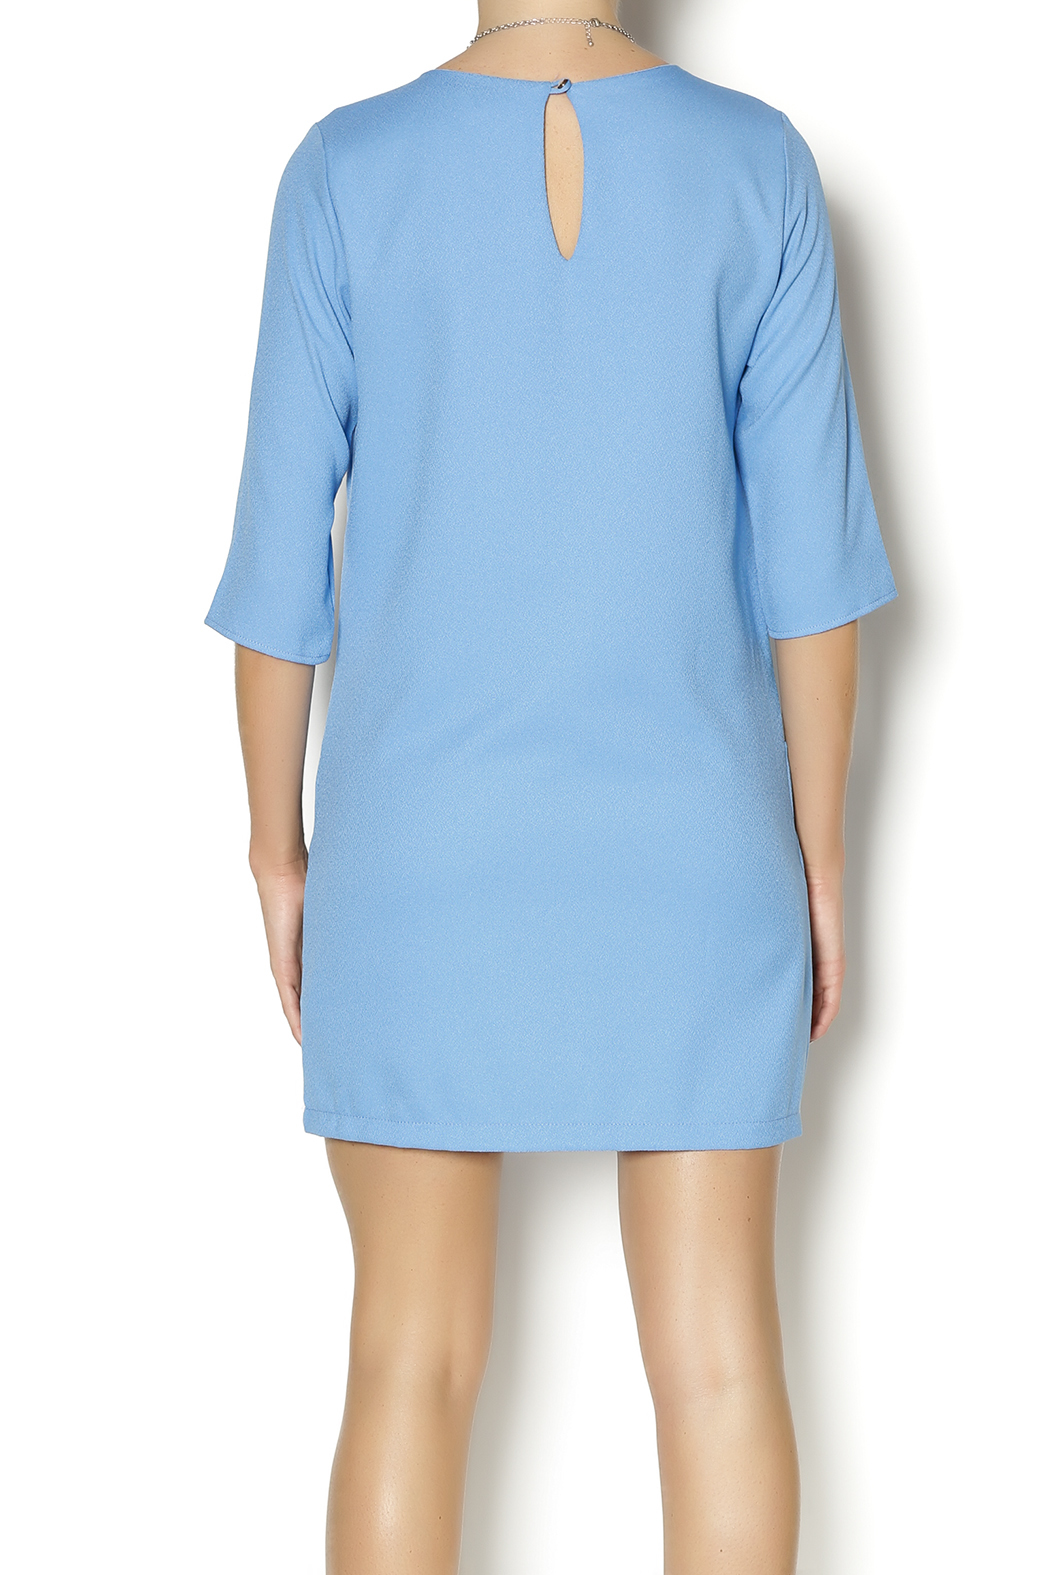 Everly Blue Shirt Dress - Back Cropped Image